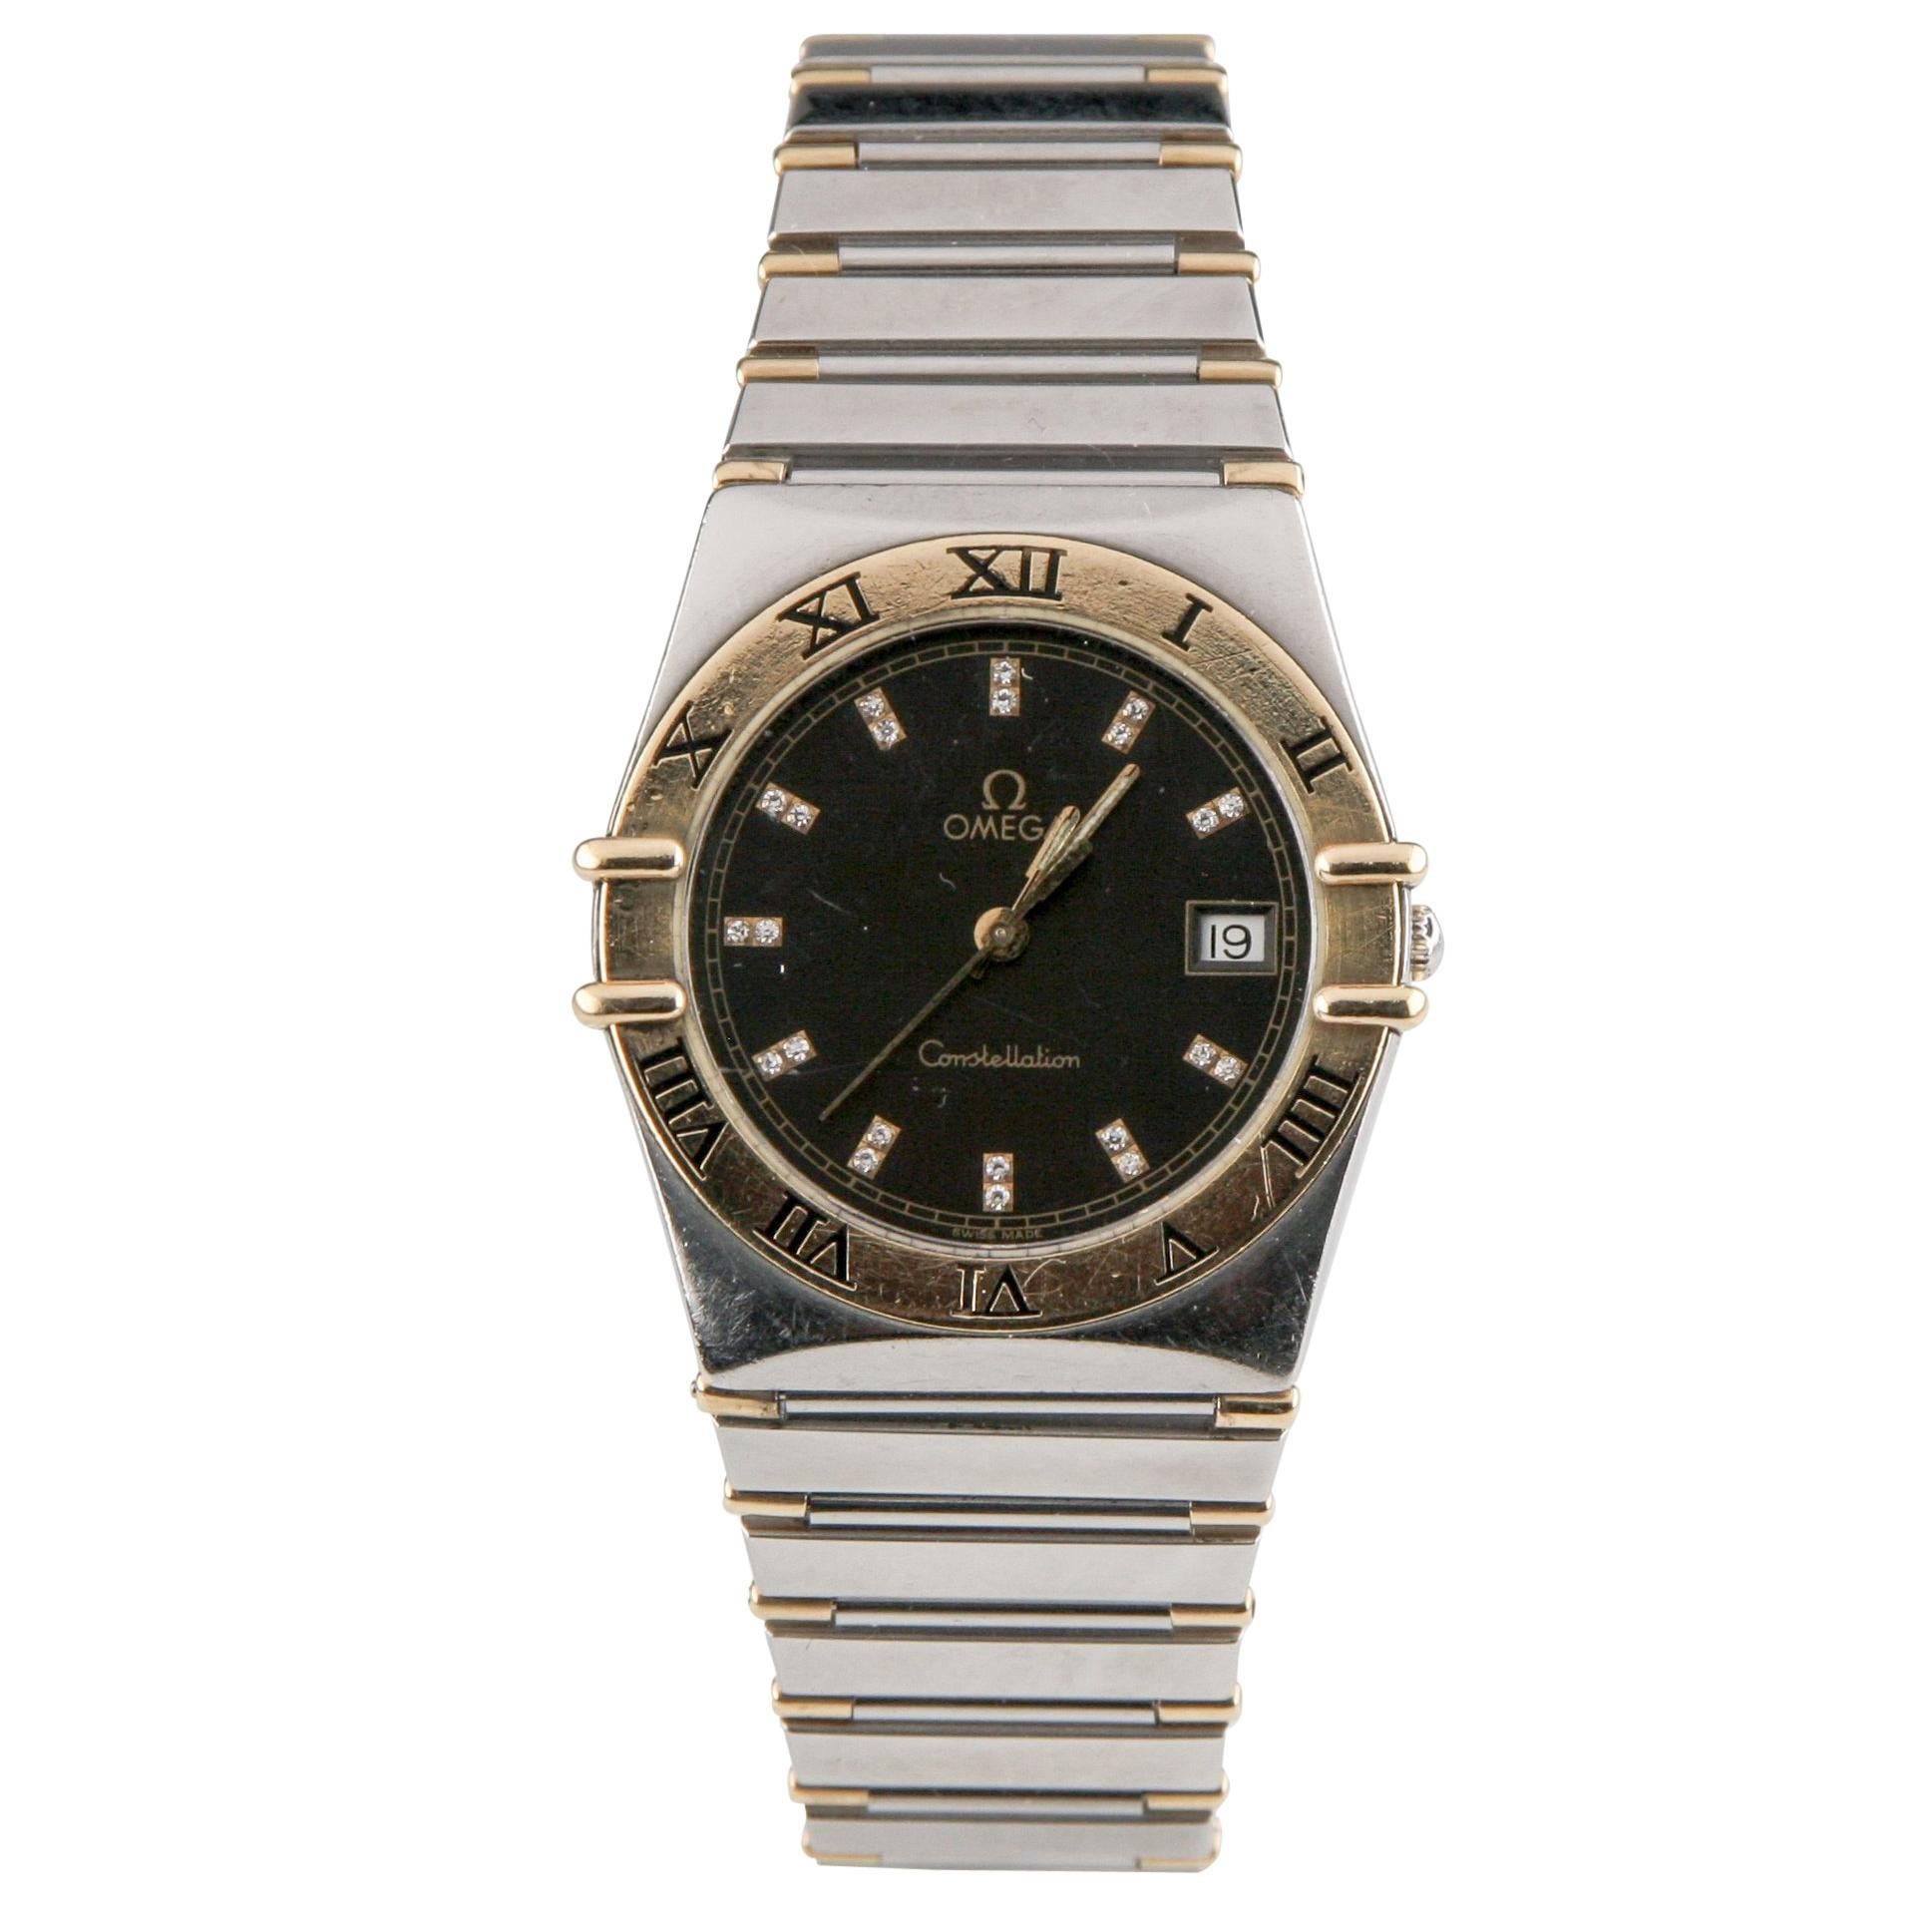 Omega Constellation Quartz Two-Tone Watch with Diamond Dial and Date Feature